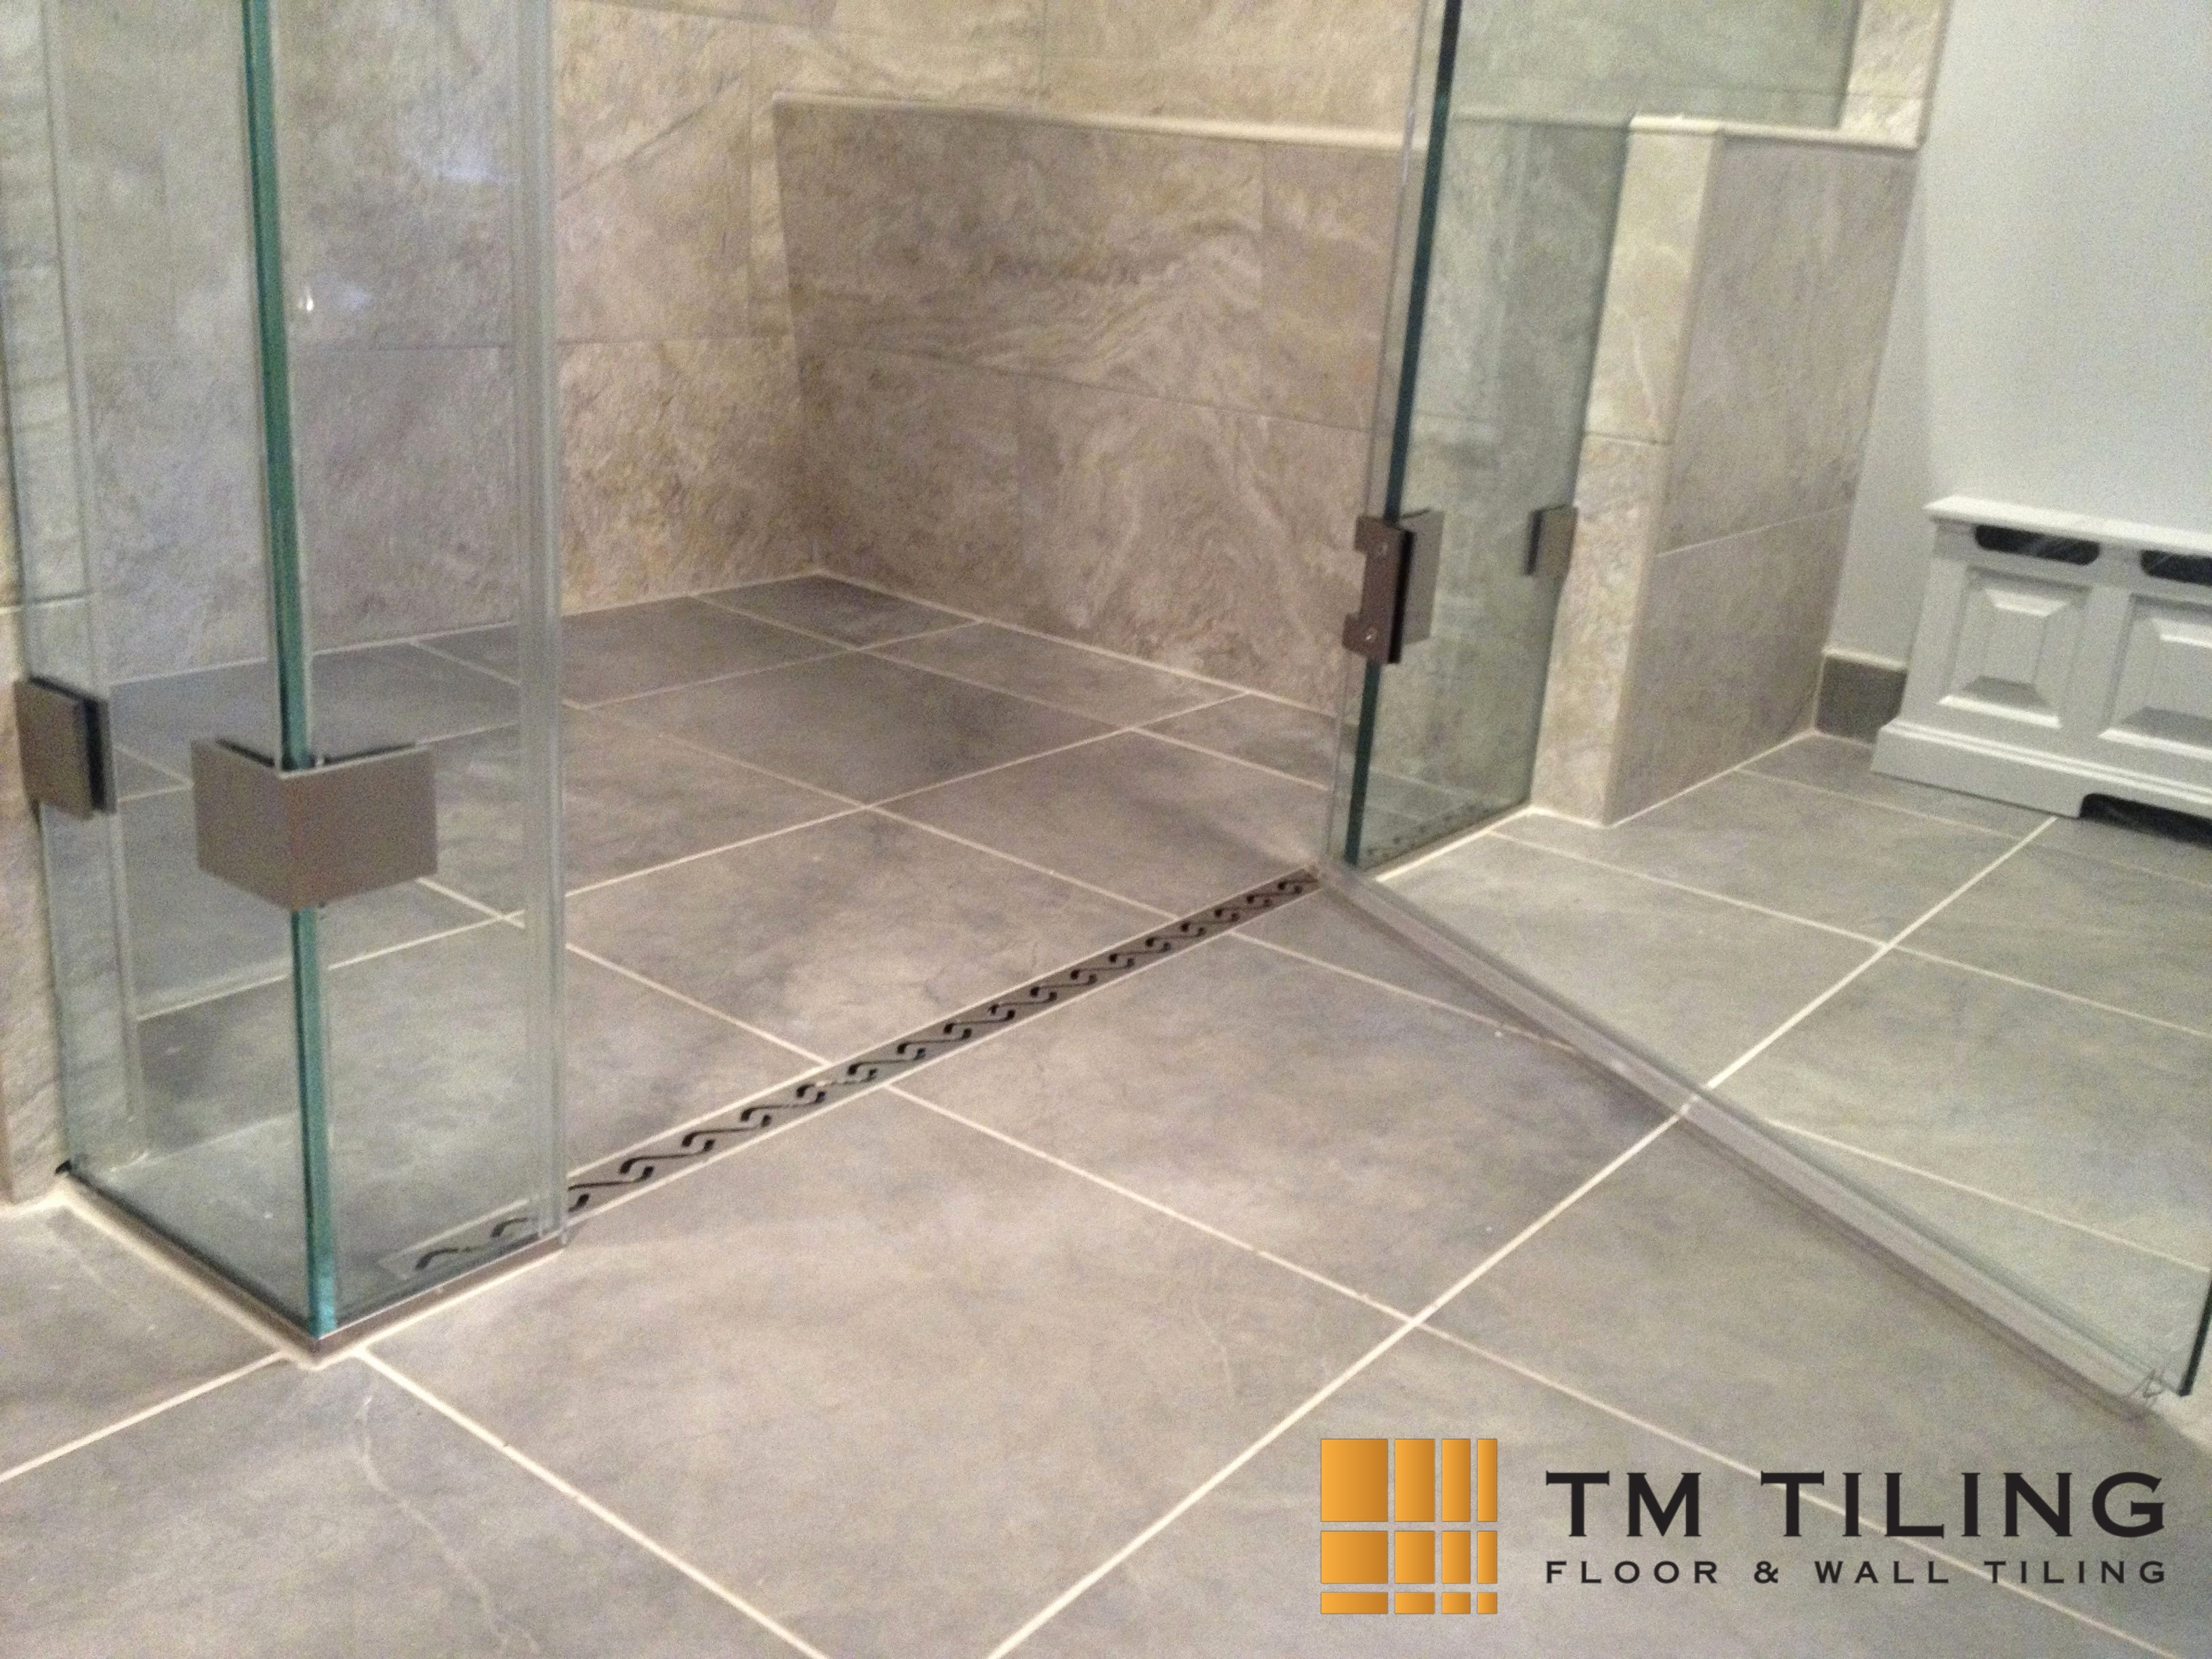 bathroom-floor-tiles-contractor-tm-tiling-singapore_wm.jpg